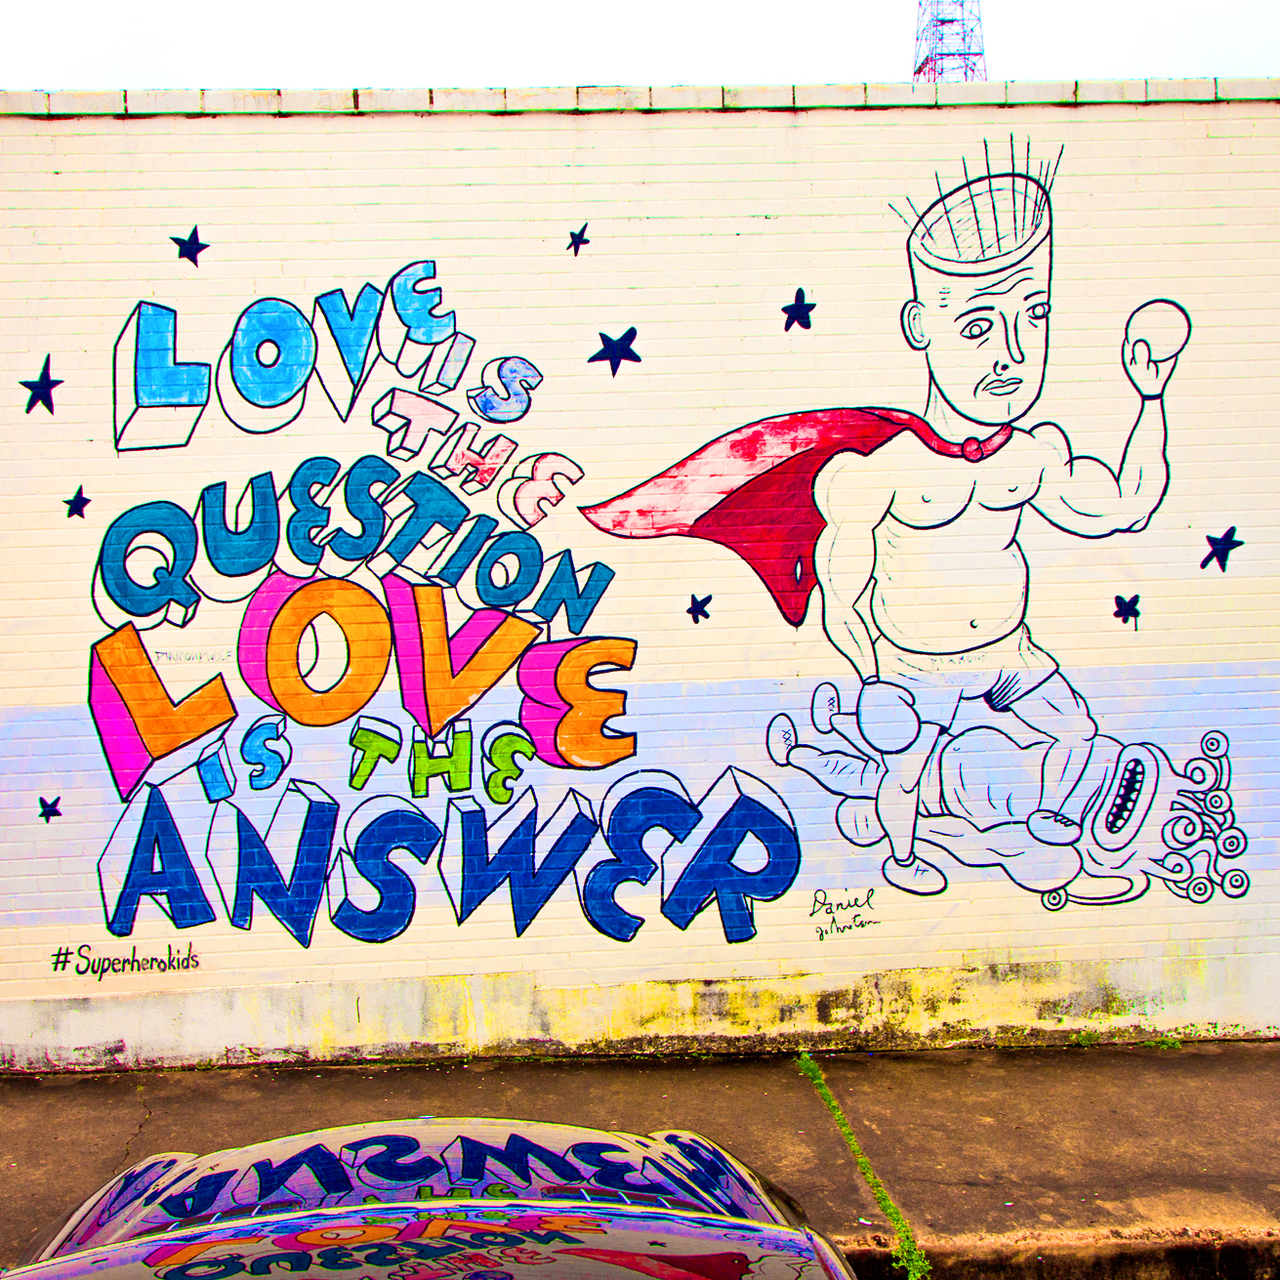 Love is the question love is the answer mural austin, texas